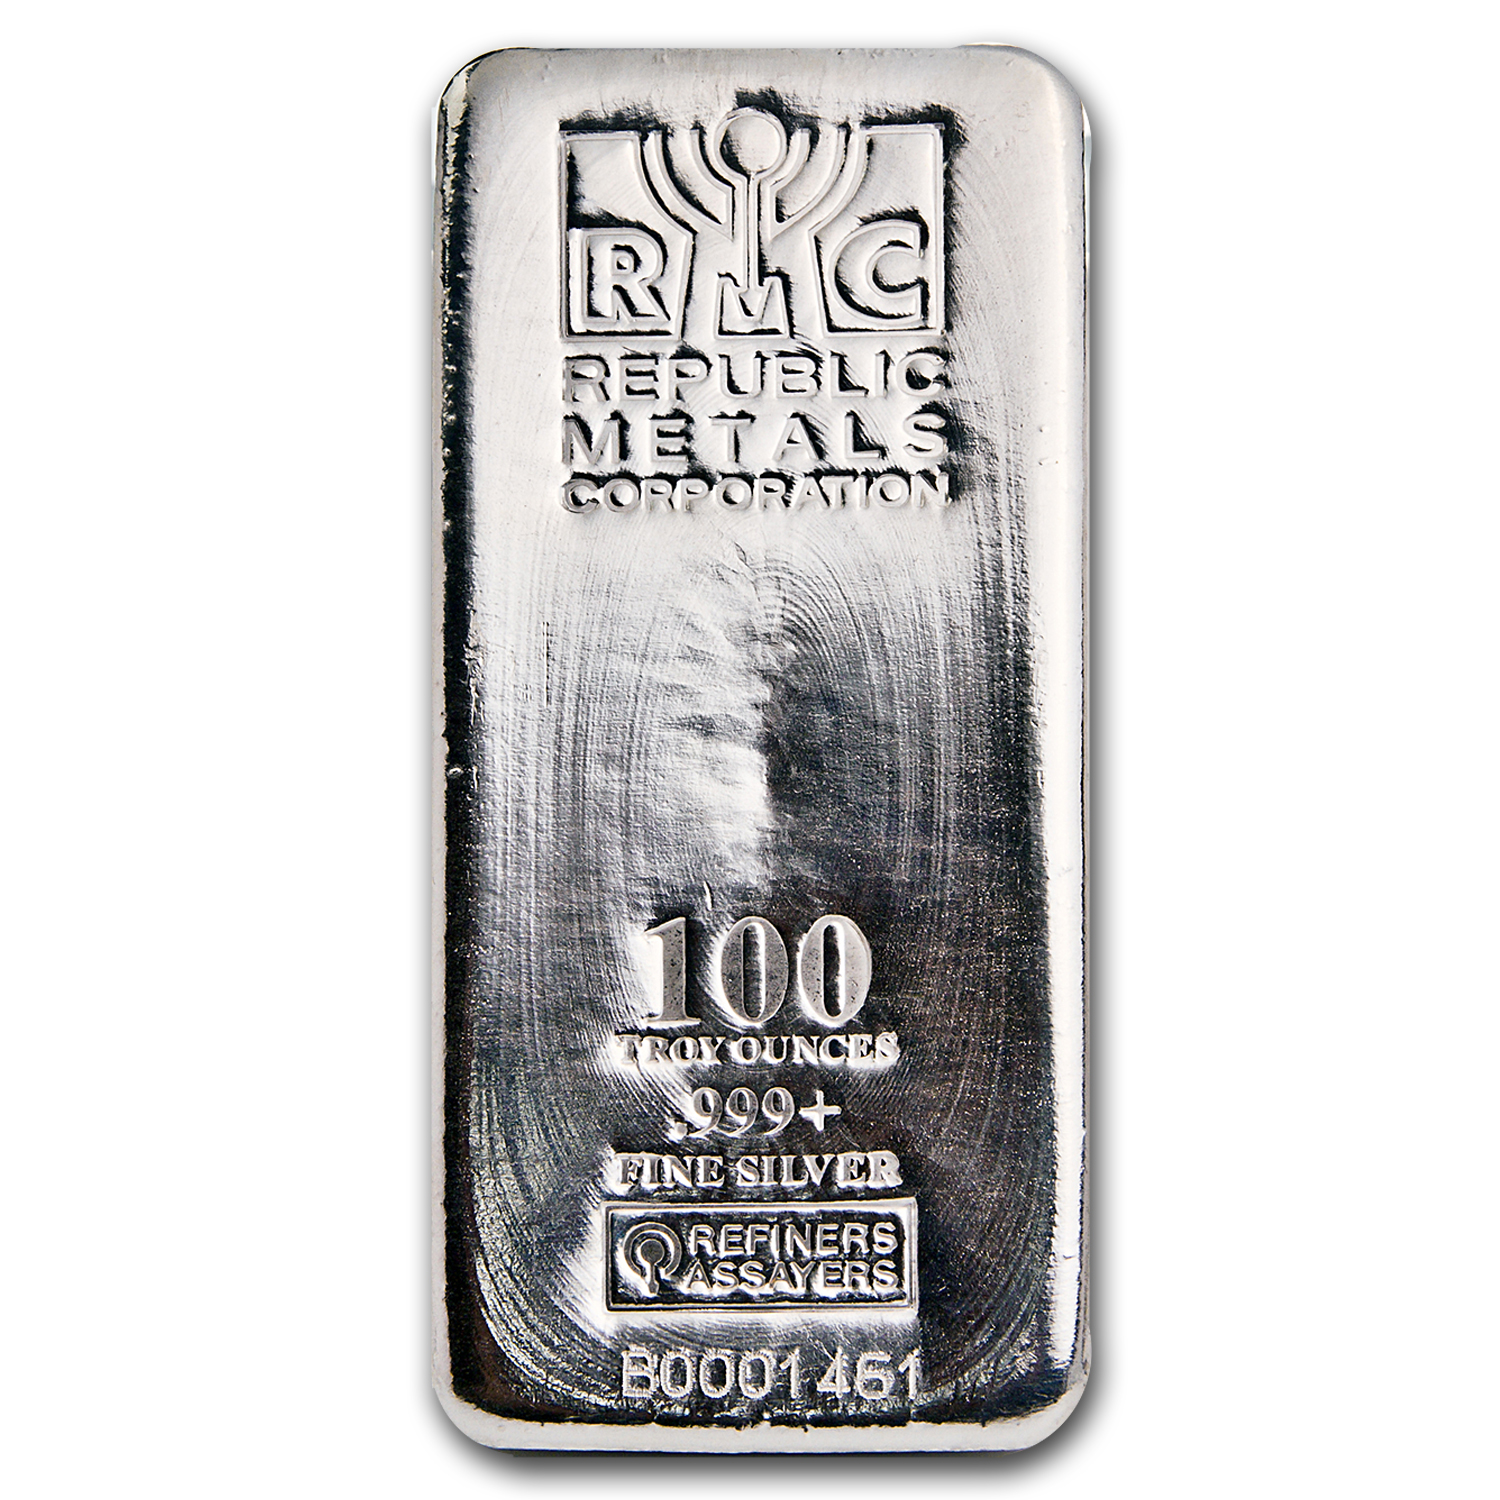 100 oz Silver Bar - Republic Metals Corporation